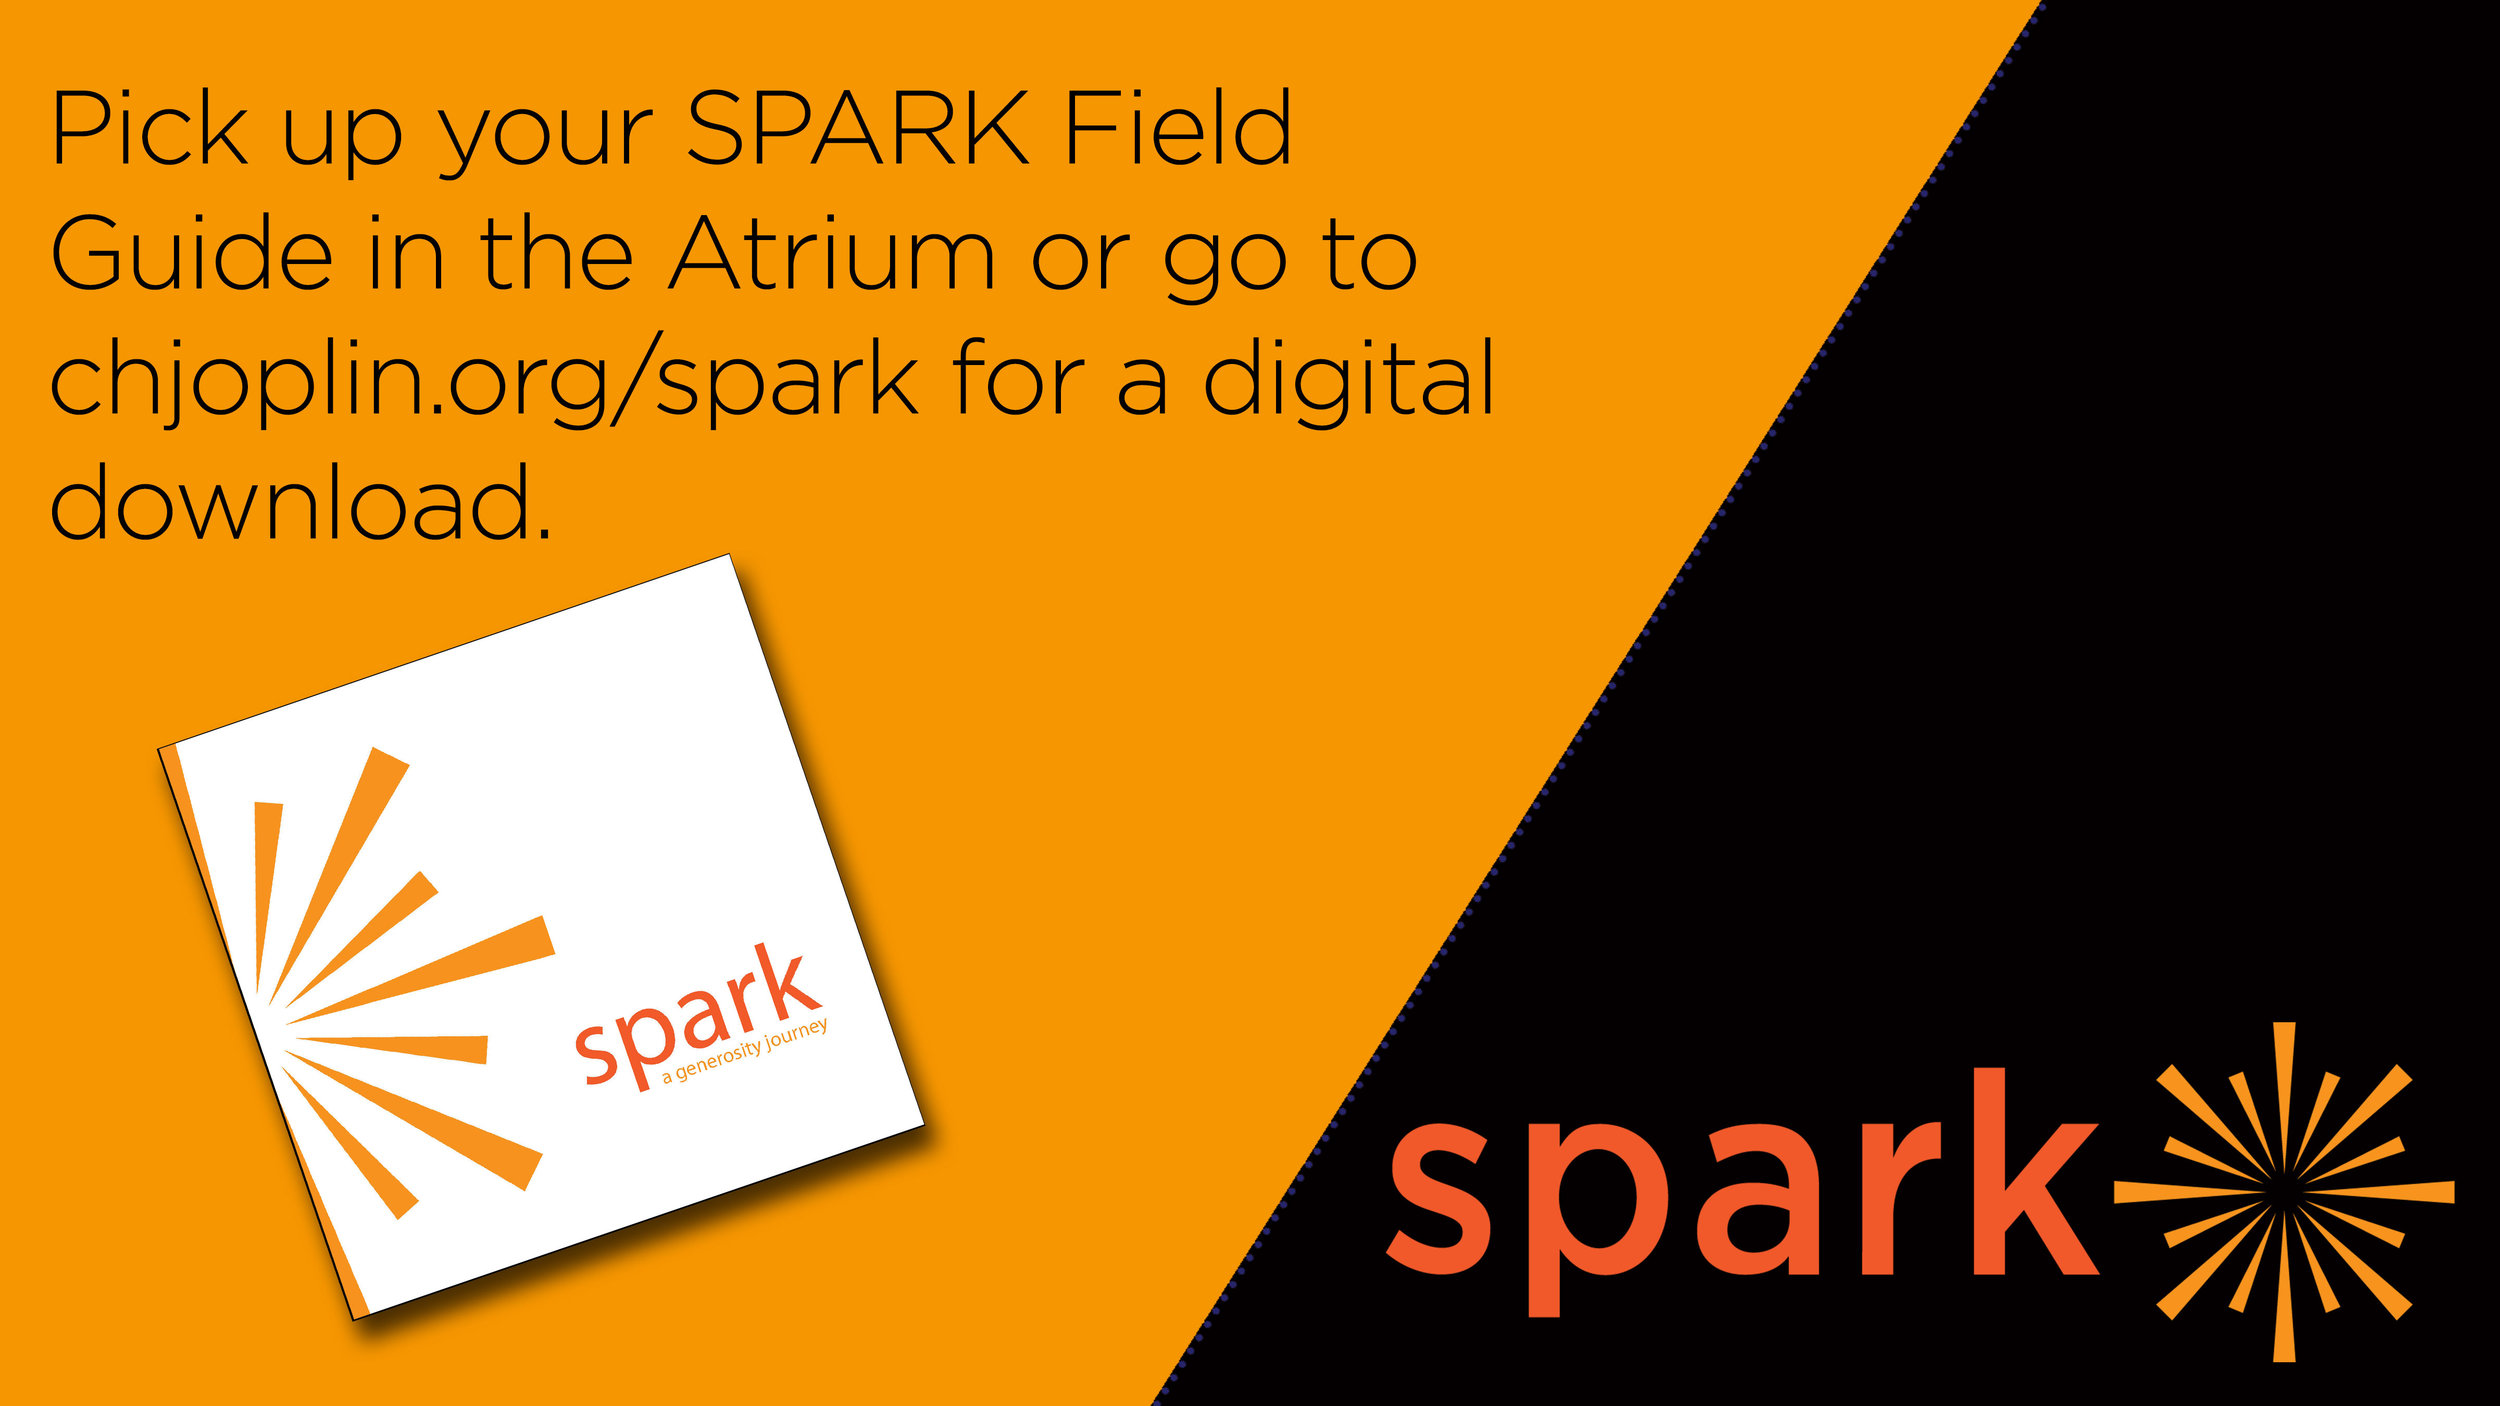 You can get a digital download of our SPARK Field Guide at  chjoplin.org/spark . You will also find SPARK stories, an online Commitment Card, FAQs, Small Group Study Guides, a Prayer Guide and more!